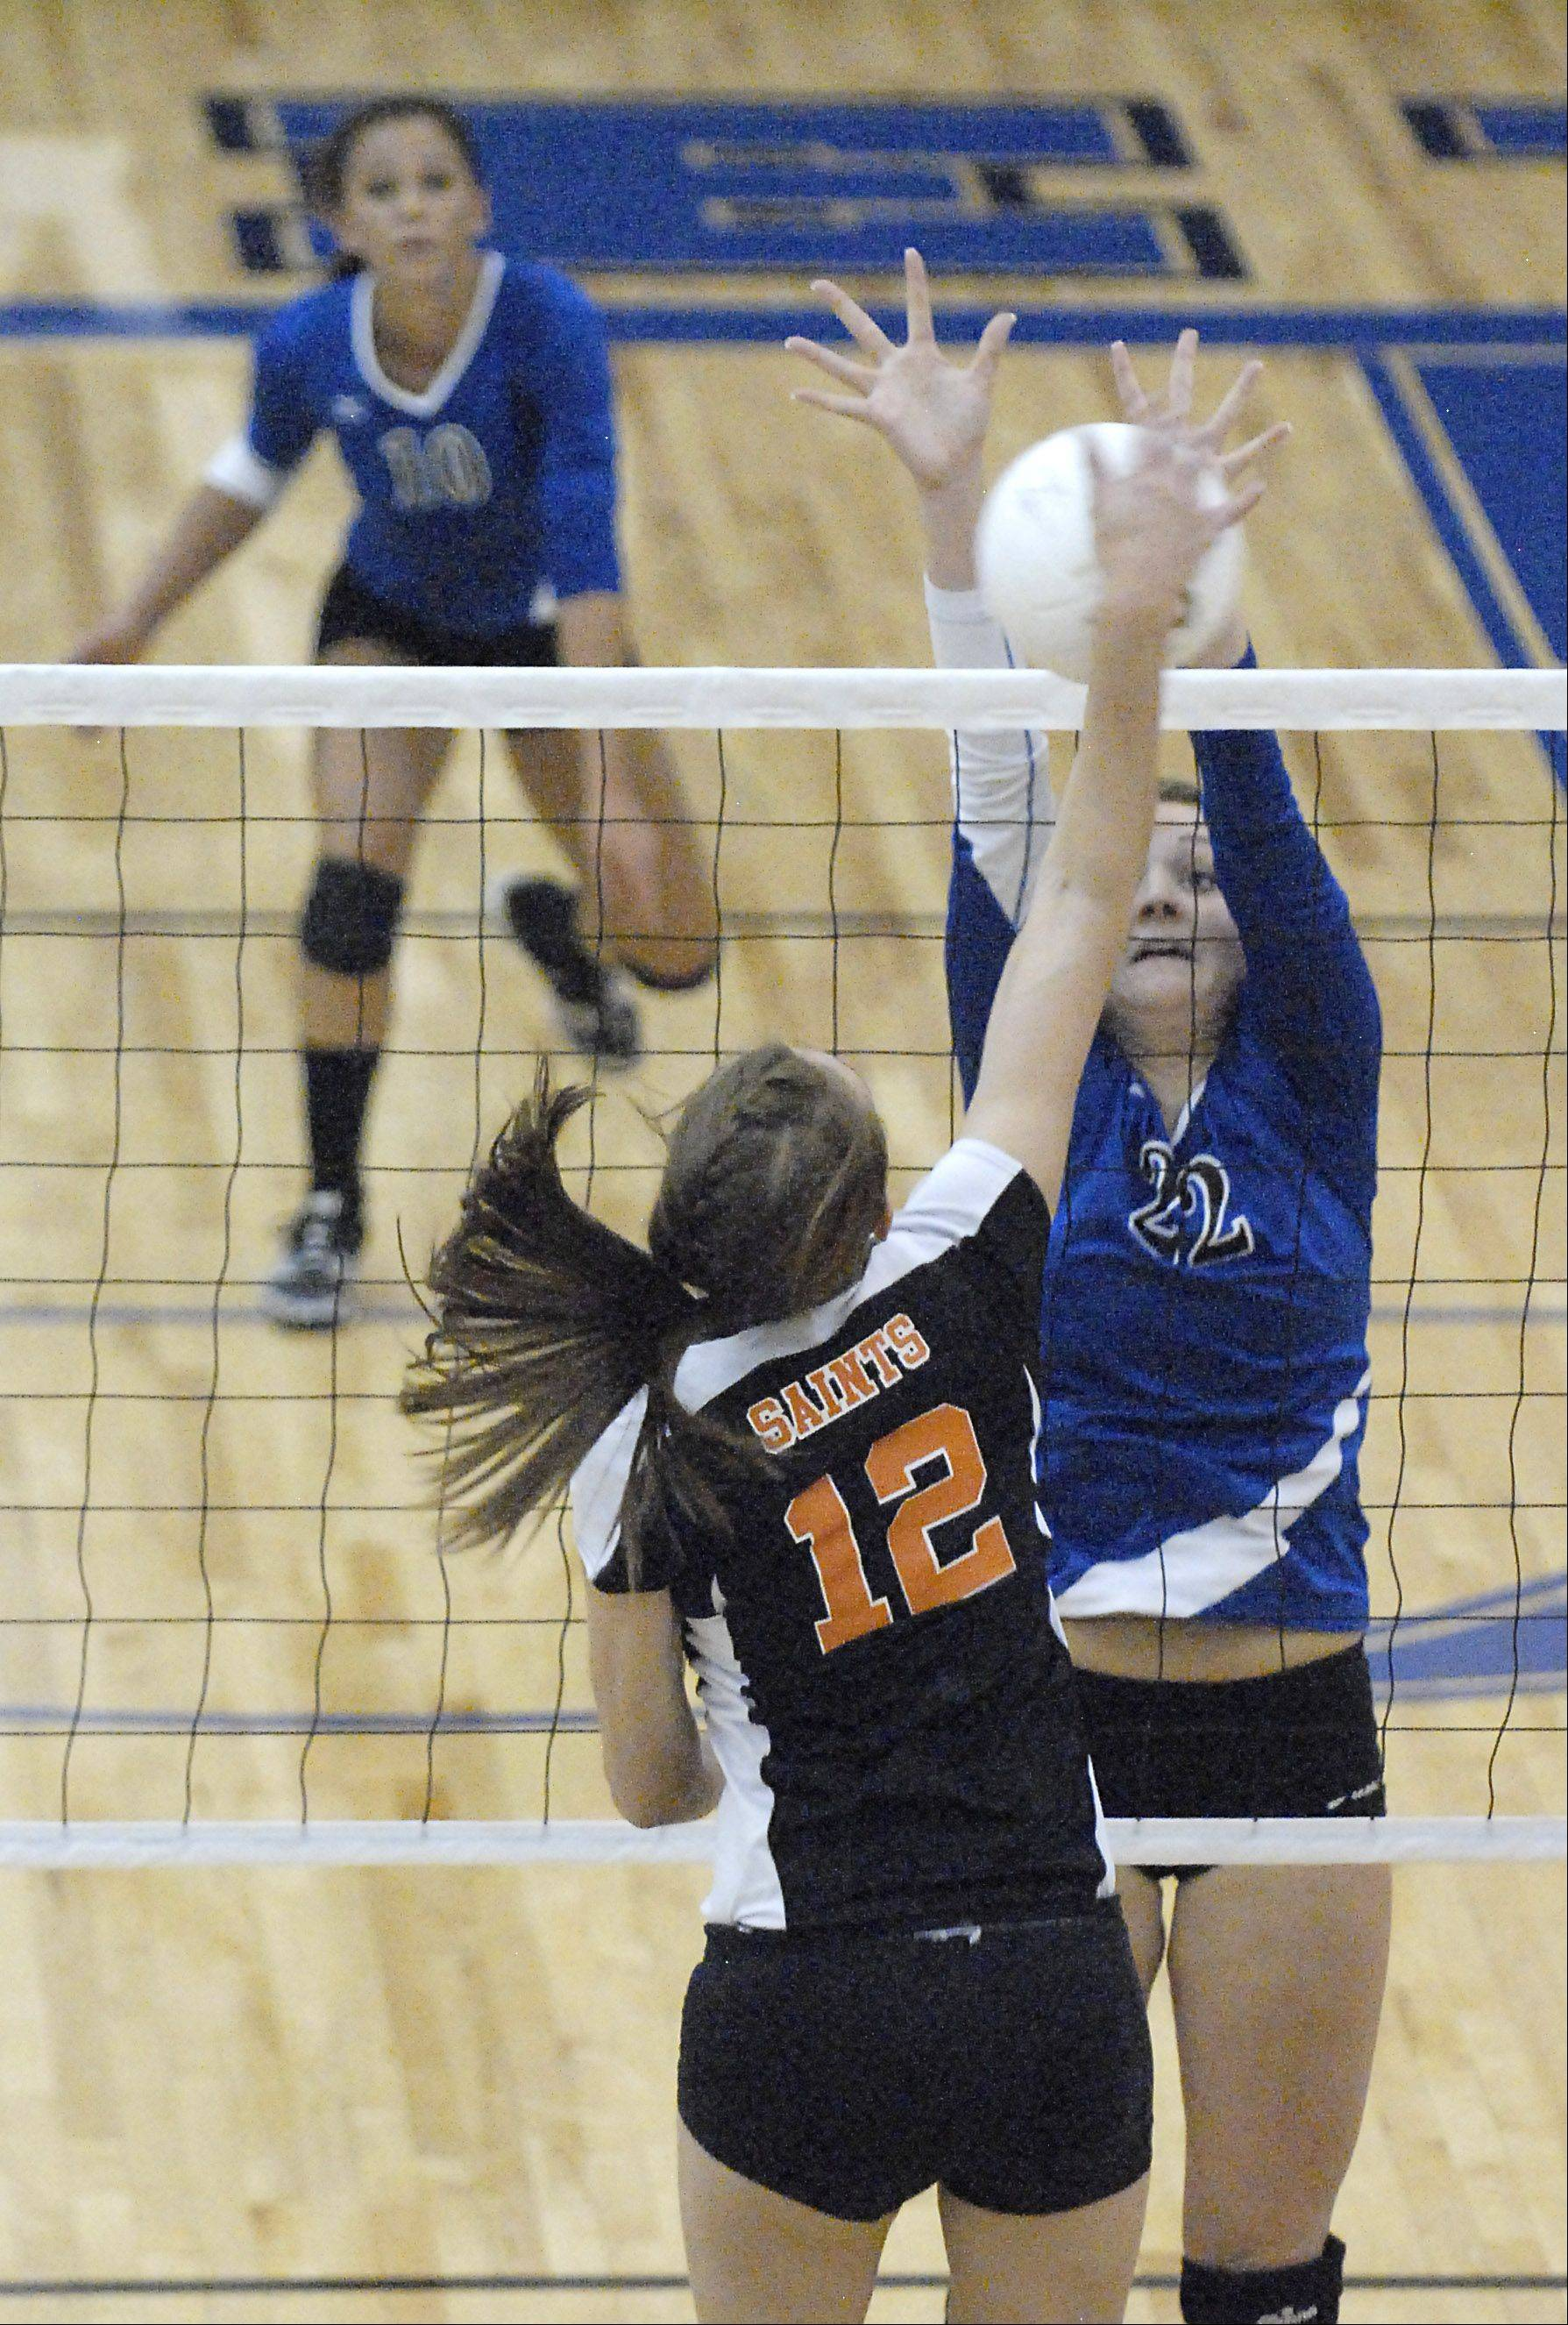 Laura Stoecker/lstoecker@dailyherald.comGeneva's Maddie Courter attempts to stop a spike by St. Charles East's Ashley Bullock in game one on Tuesday, October 16.